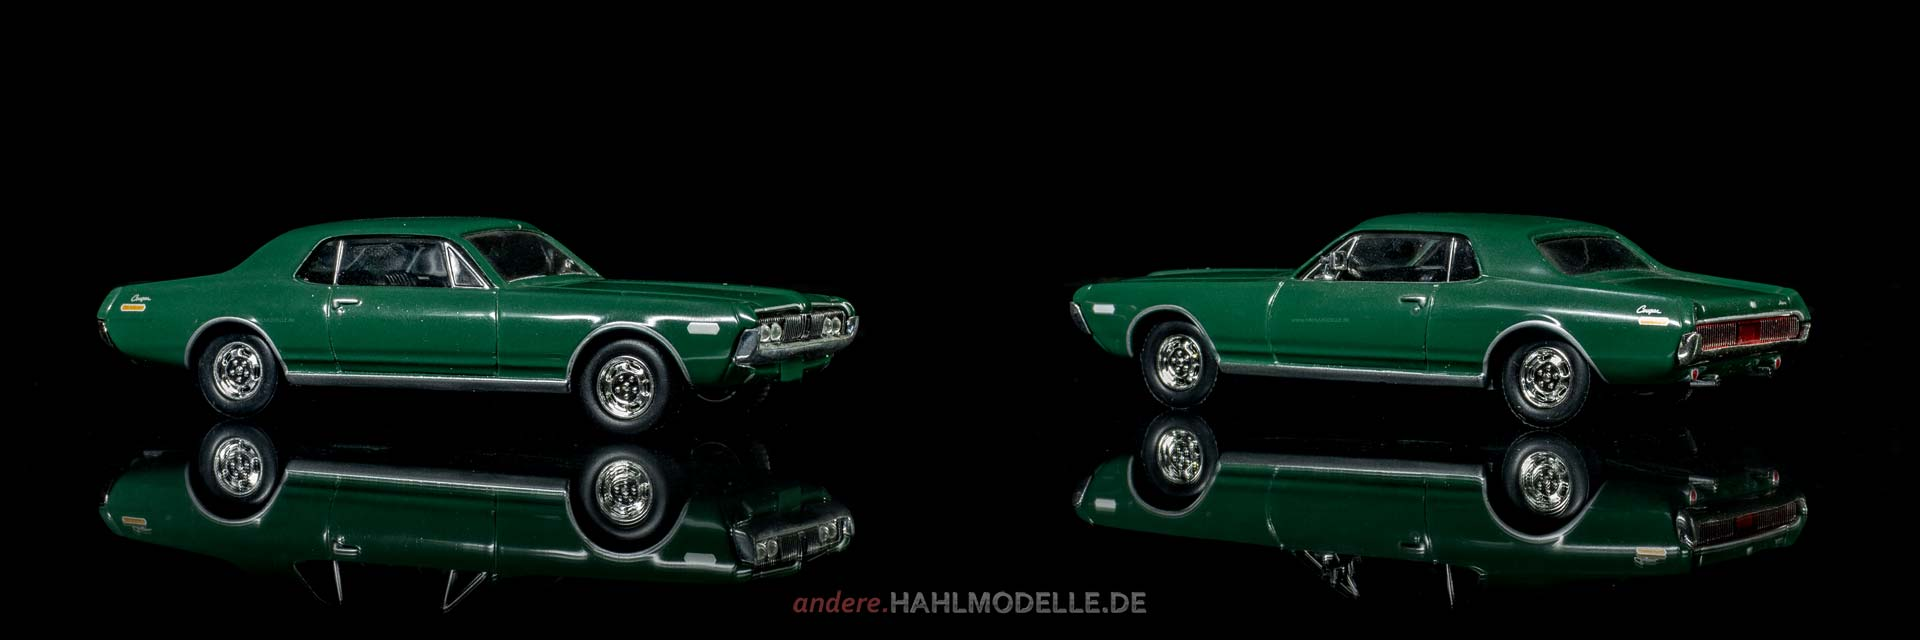 Mercury Cougar | Coupé | Ixo (Del Prado Car Collection) | 1:43 | www.andere.hahlmodelle.de